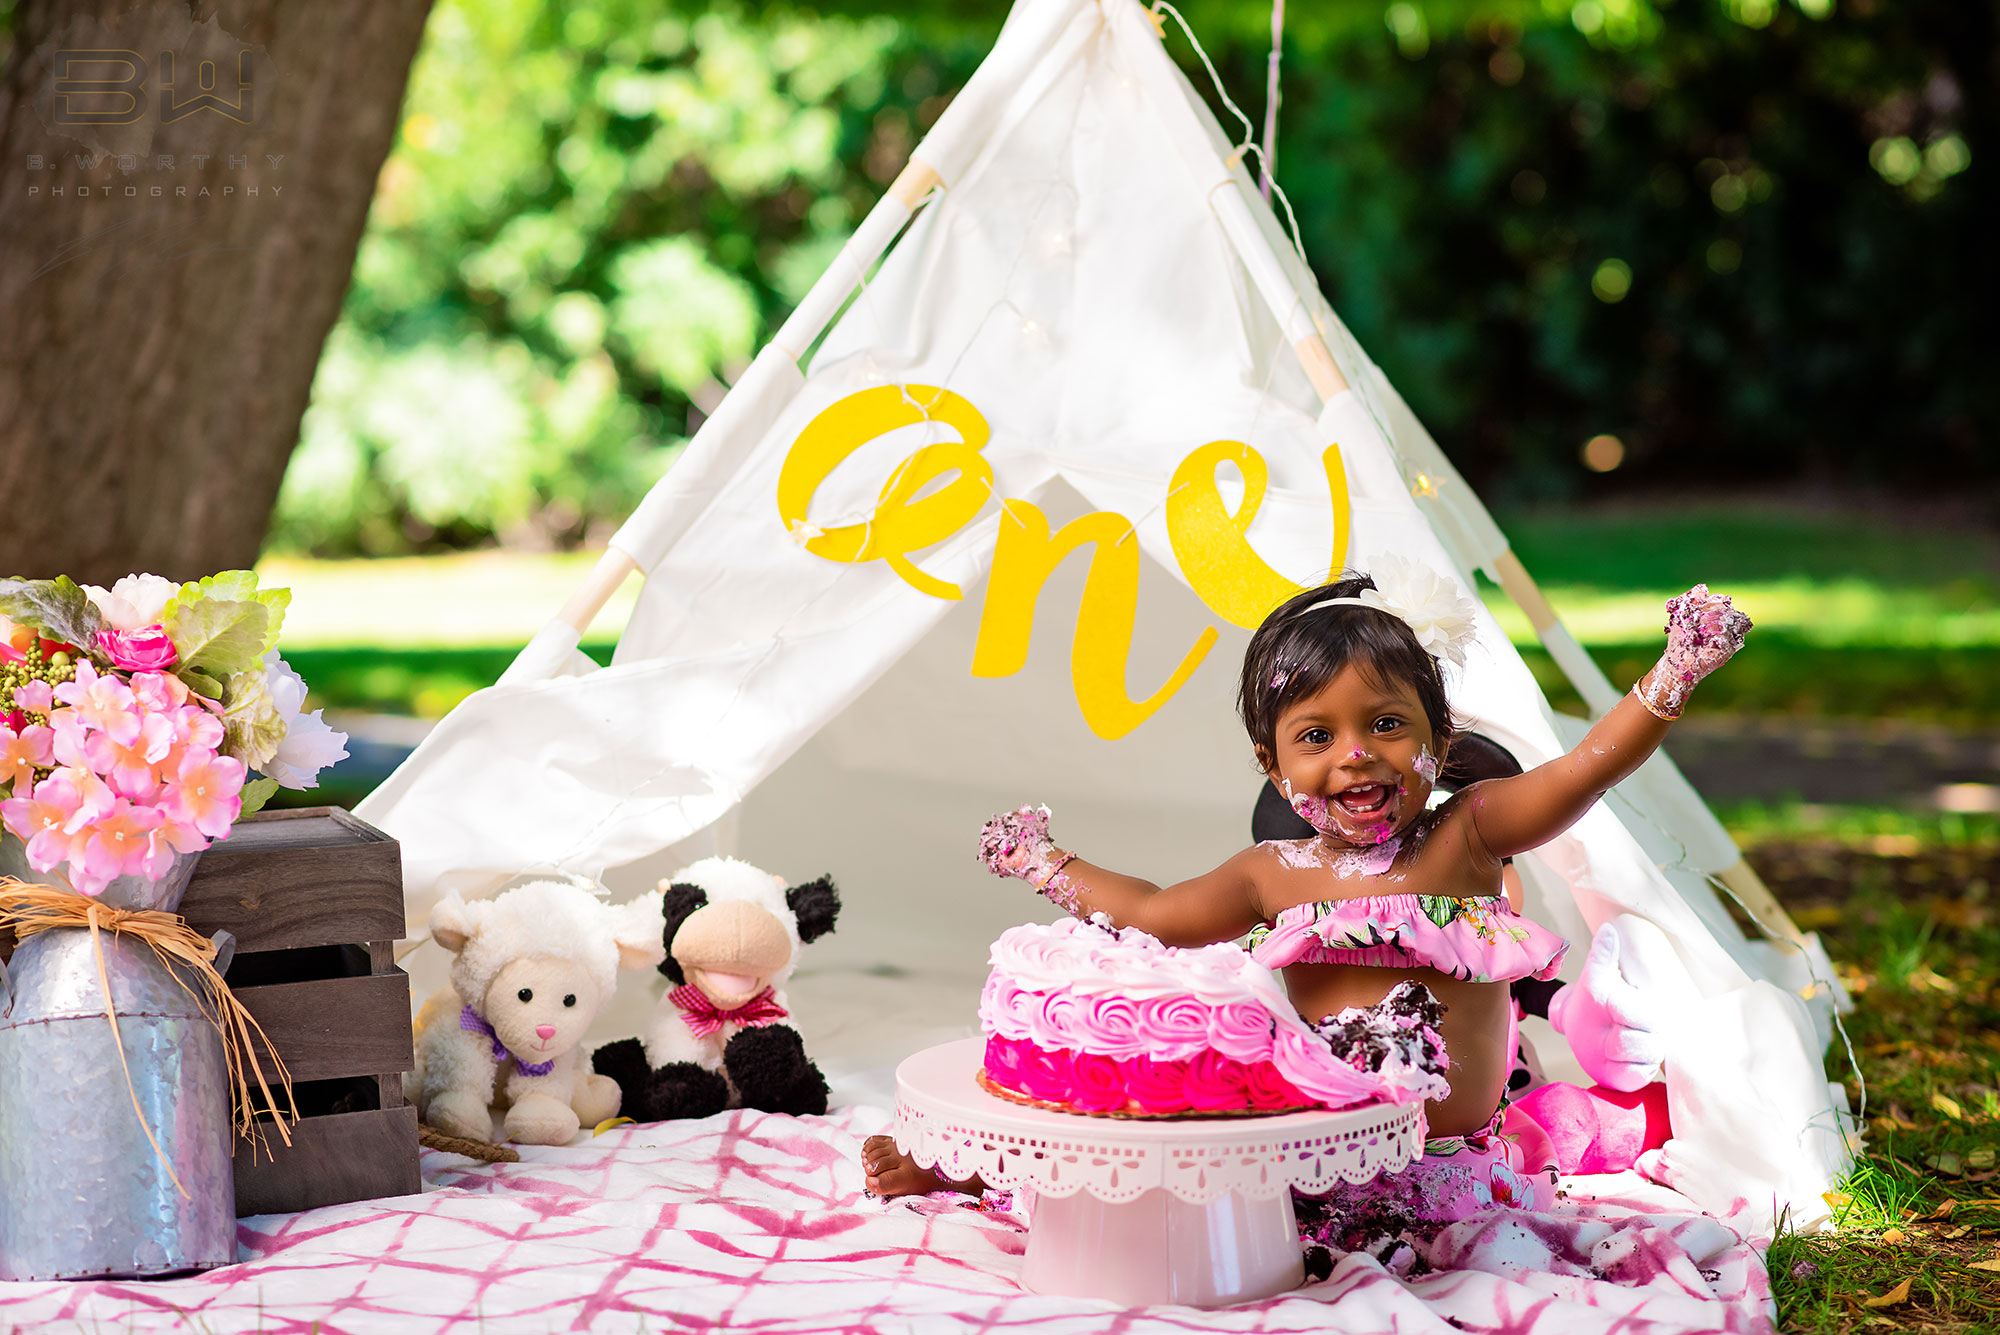 https://bworthyphotography.smugmug.com/BW-Website-Family-Session/Ramaradjou-Cake-Smash